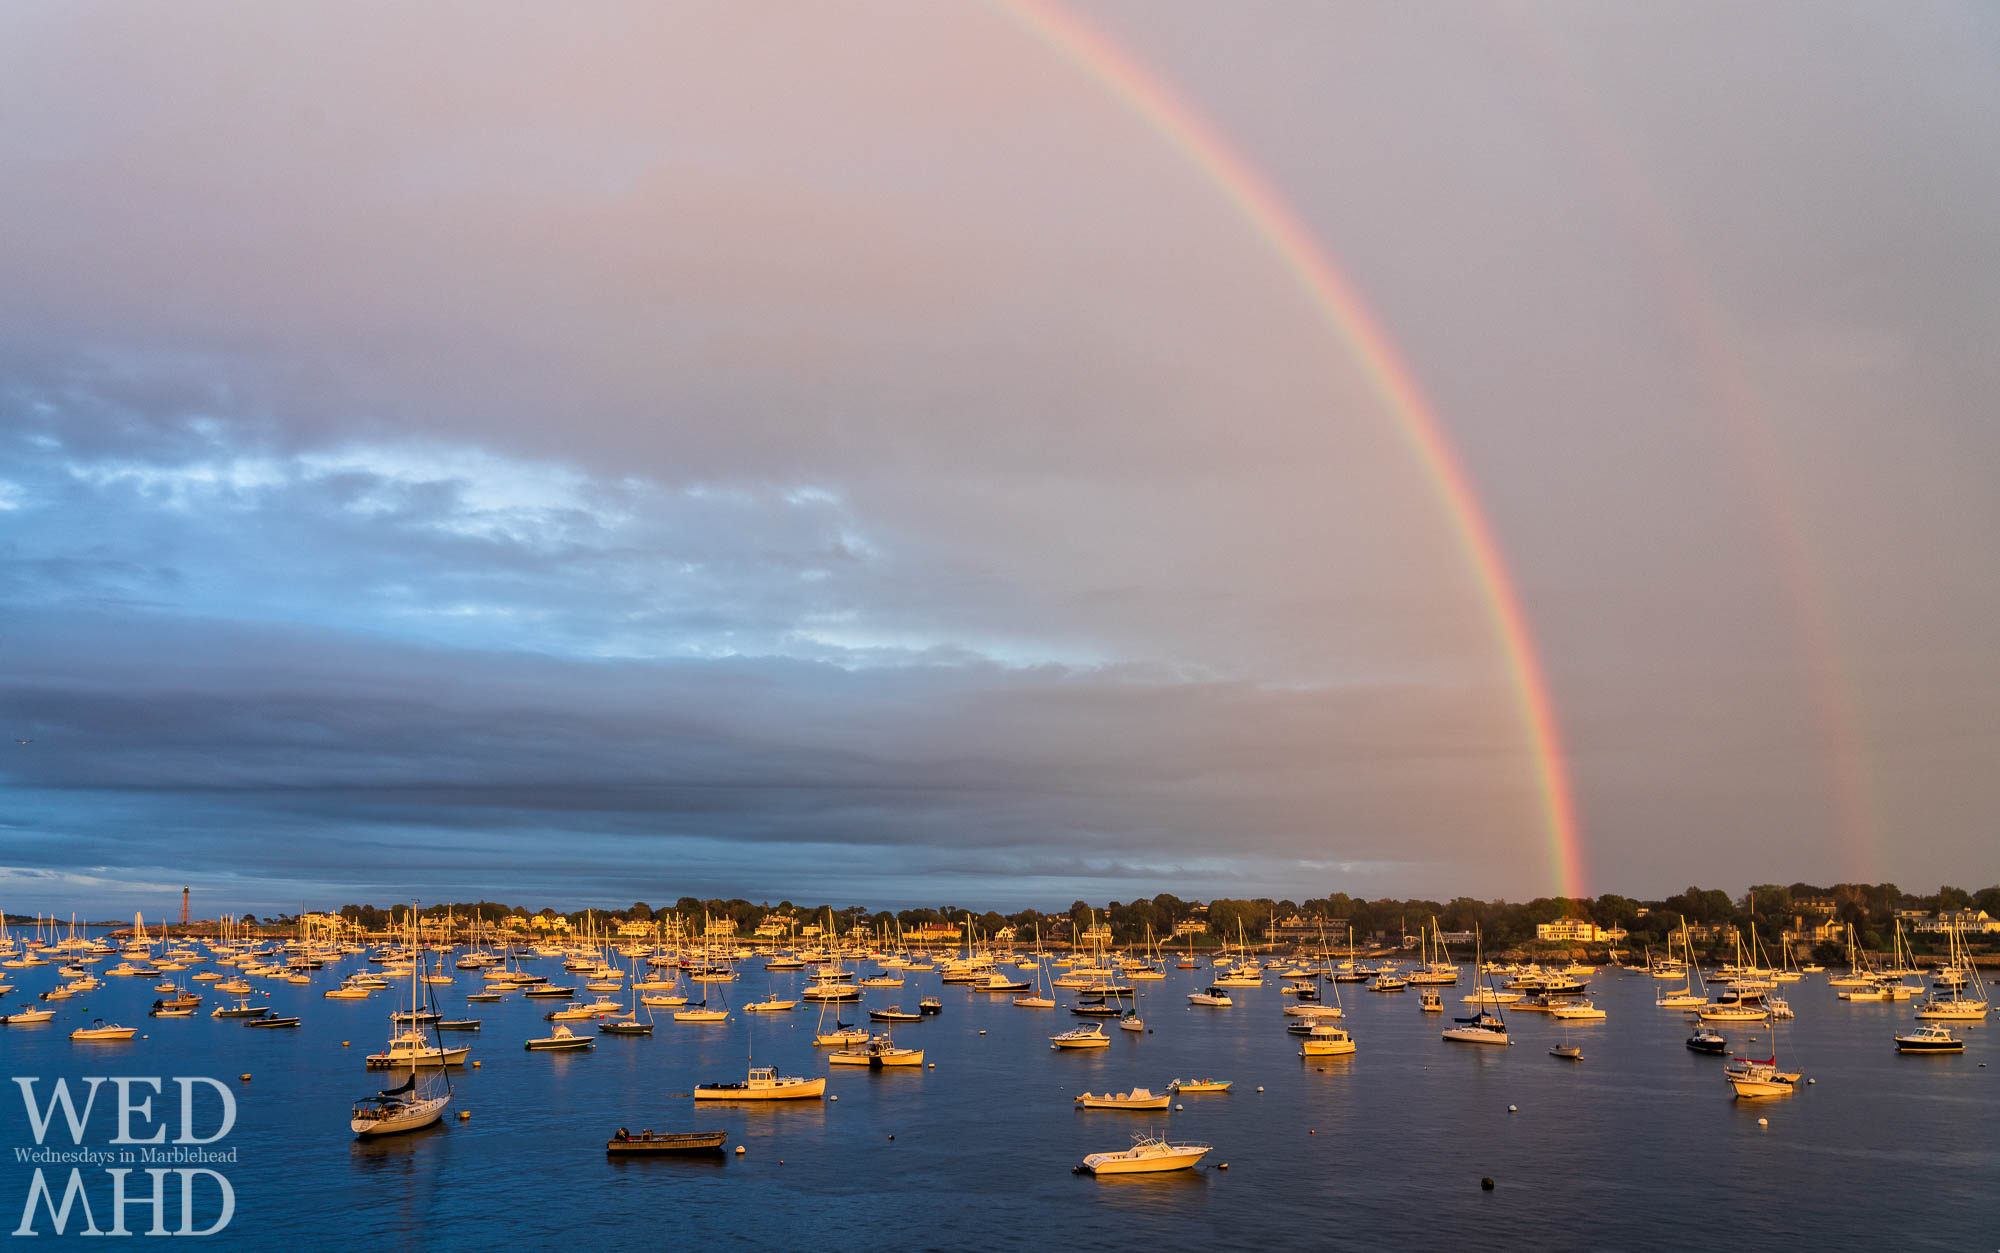 A rainbow appears as a light after the storm passes by Marblehead Harbor on a fall evening with boats filling the moorings